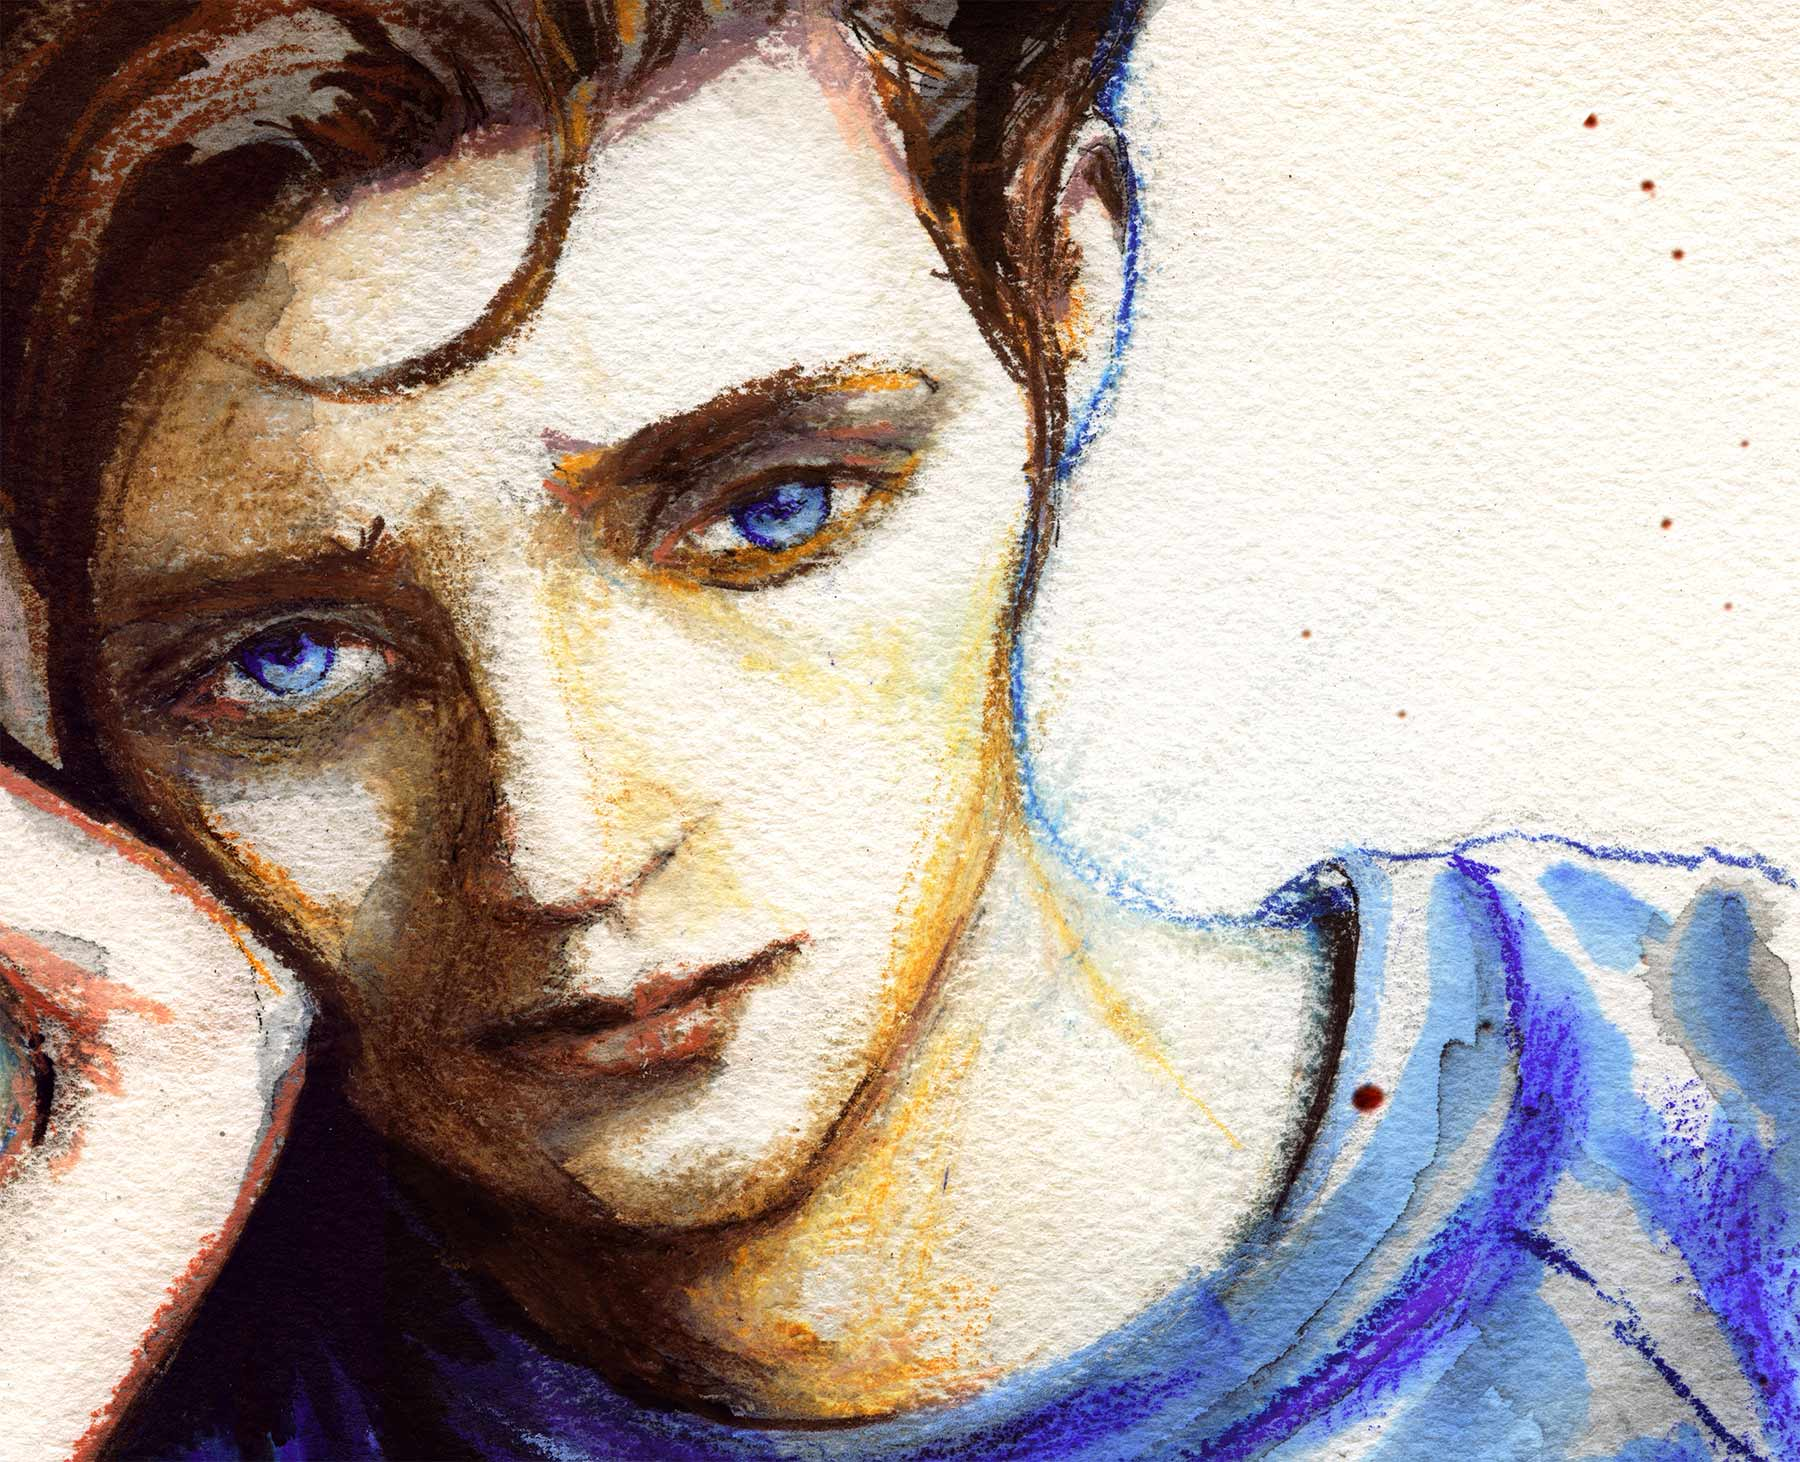 Close up of the boys face from danny roberts album art for SayAnything's oliver appropriate